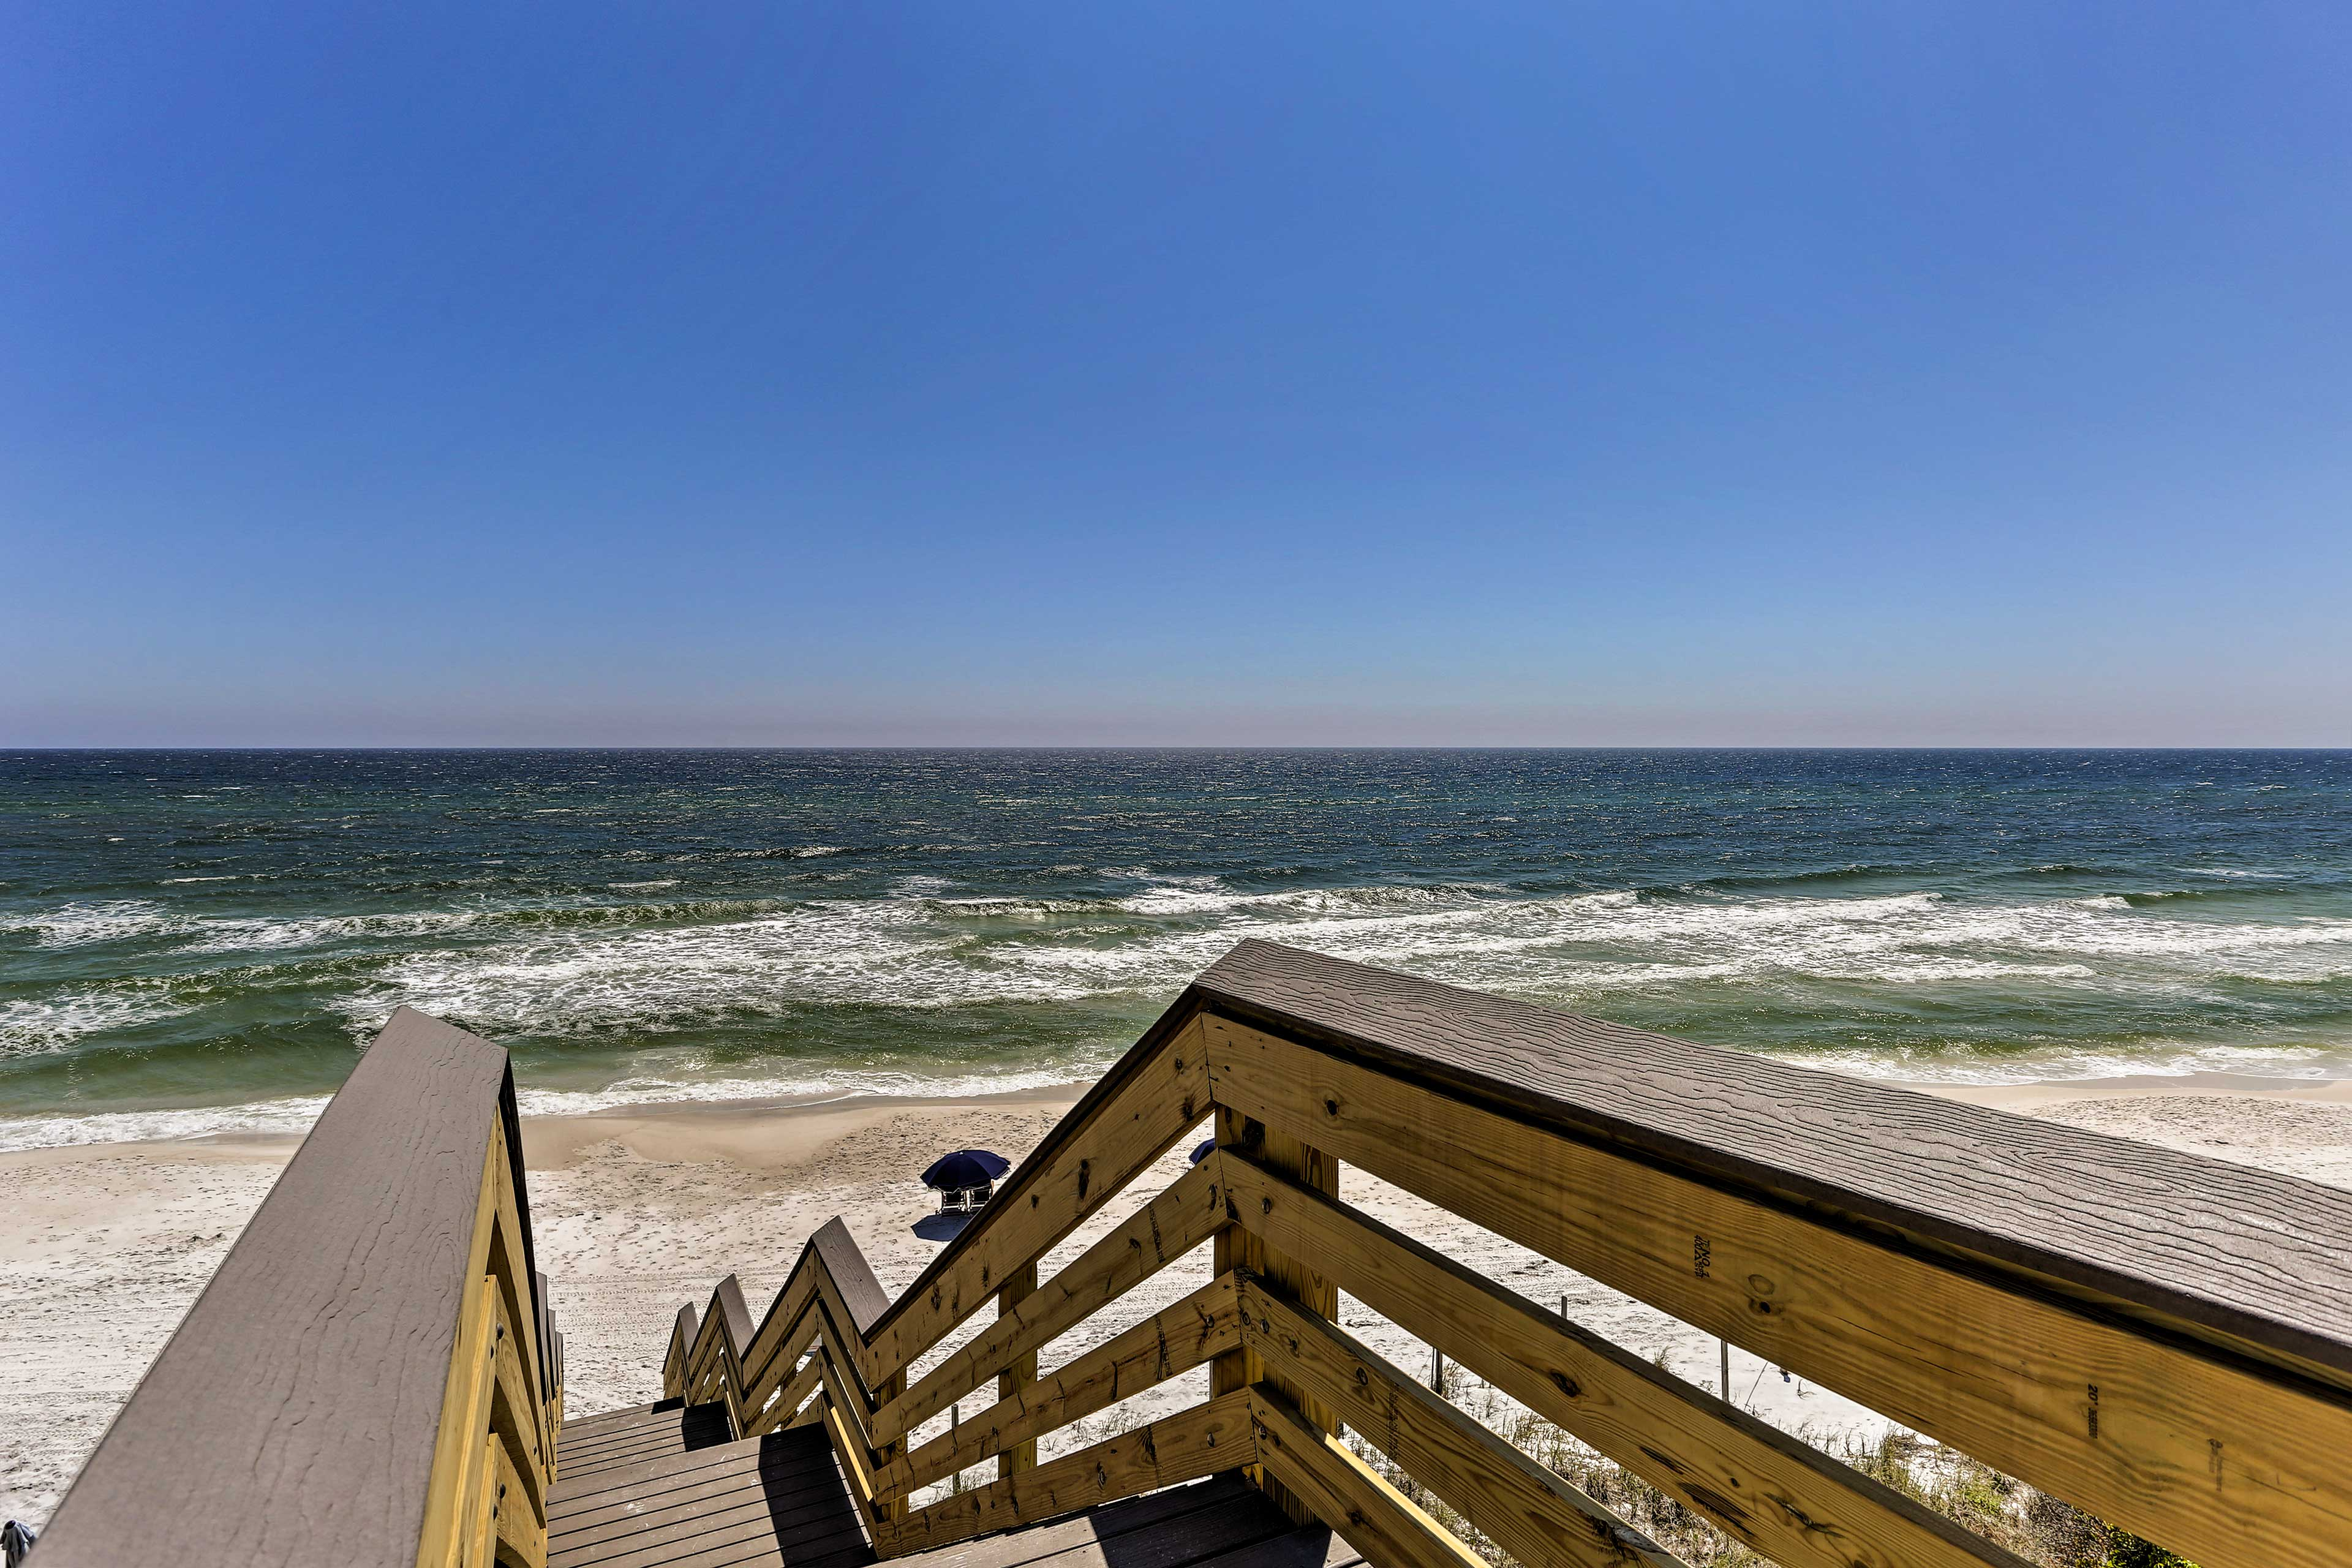 Make your way down the boardwalk & dip your toes in the ocean.